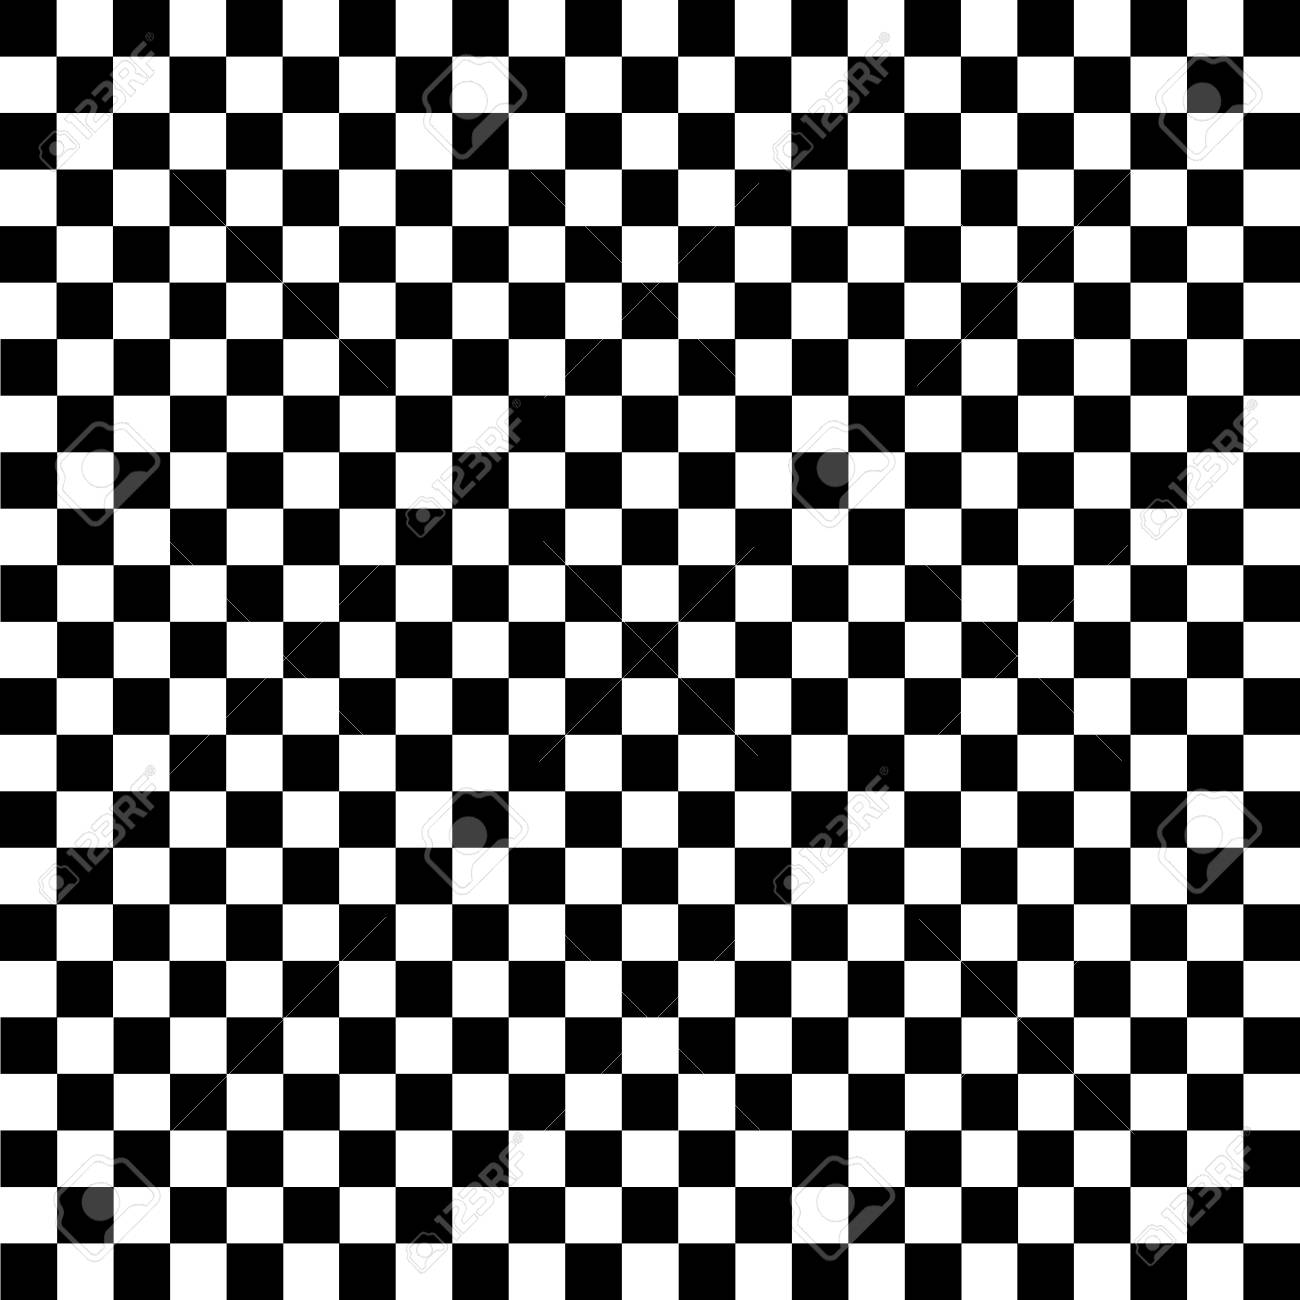 Black and white checkered background. Chess pattern. Vector illustration.